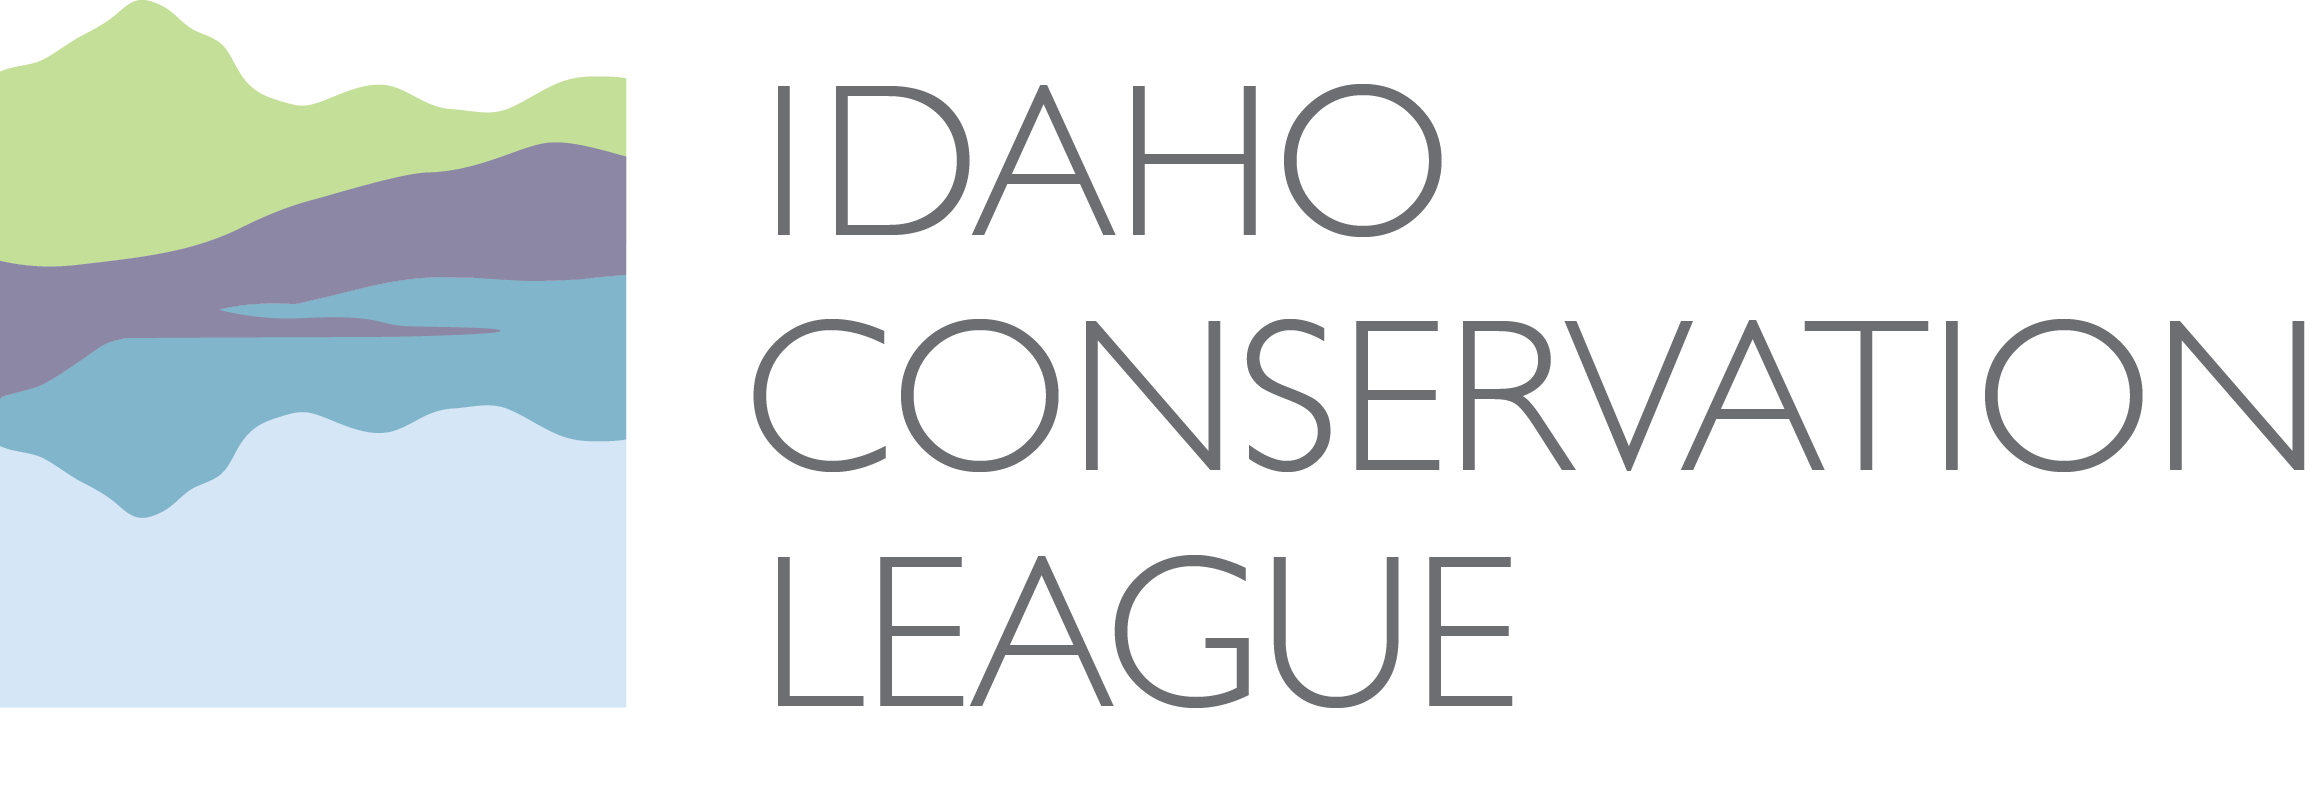 idaho conservation league